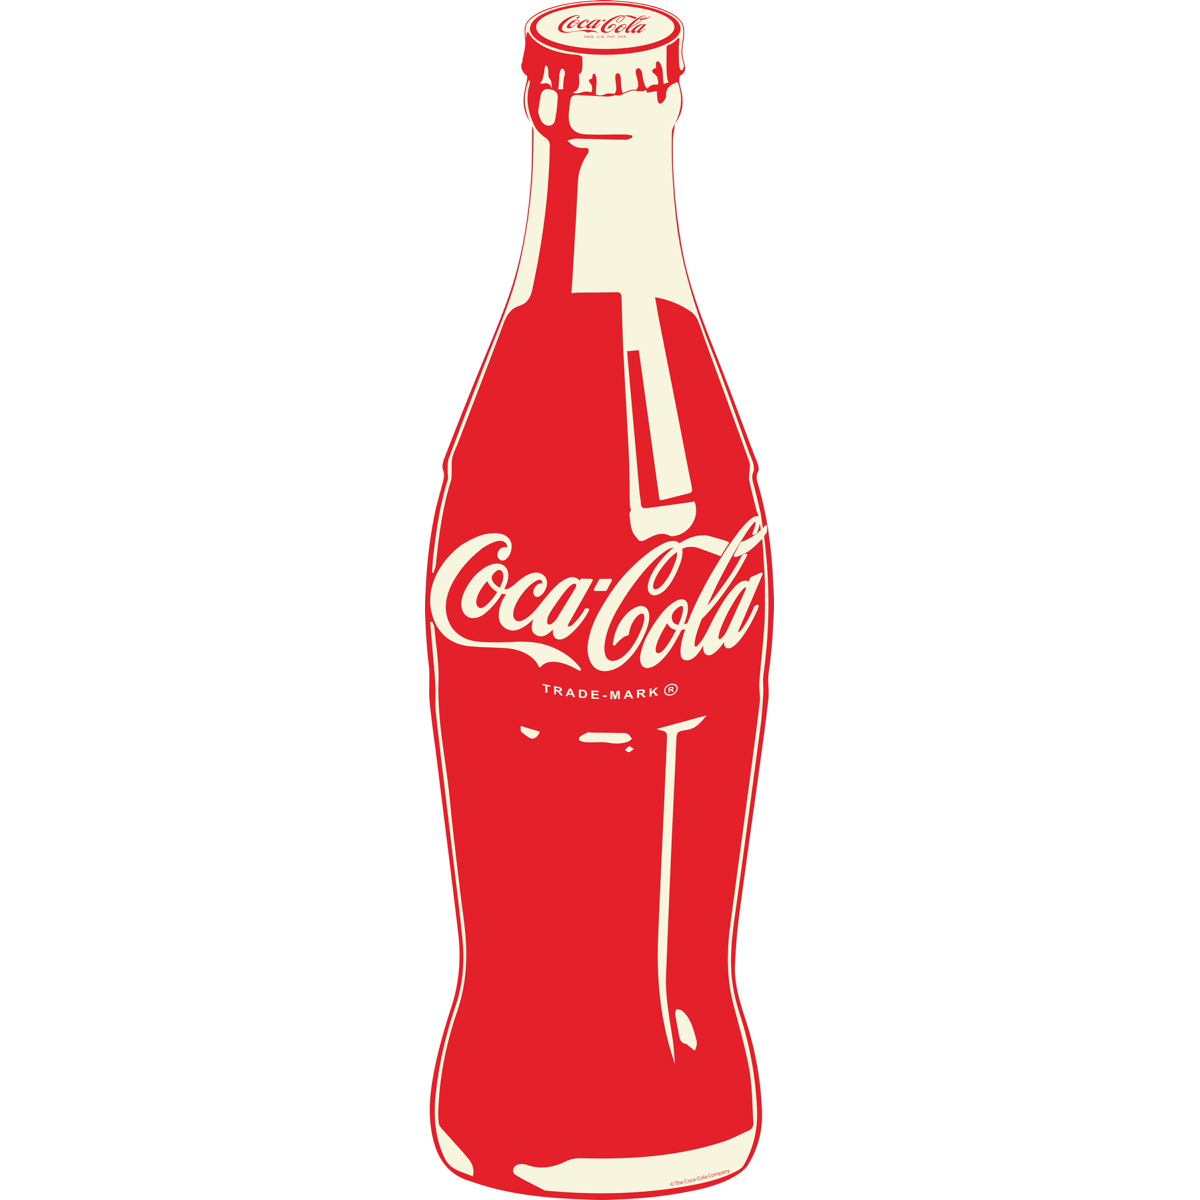 Coca Cola Red Contrast Bottle Pop Art Decal At Retro Planet